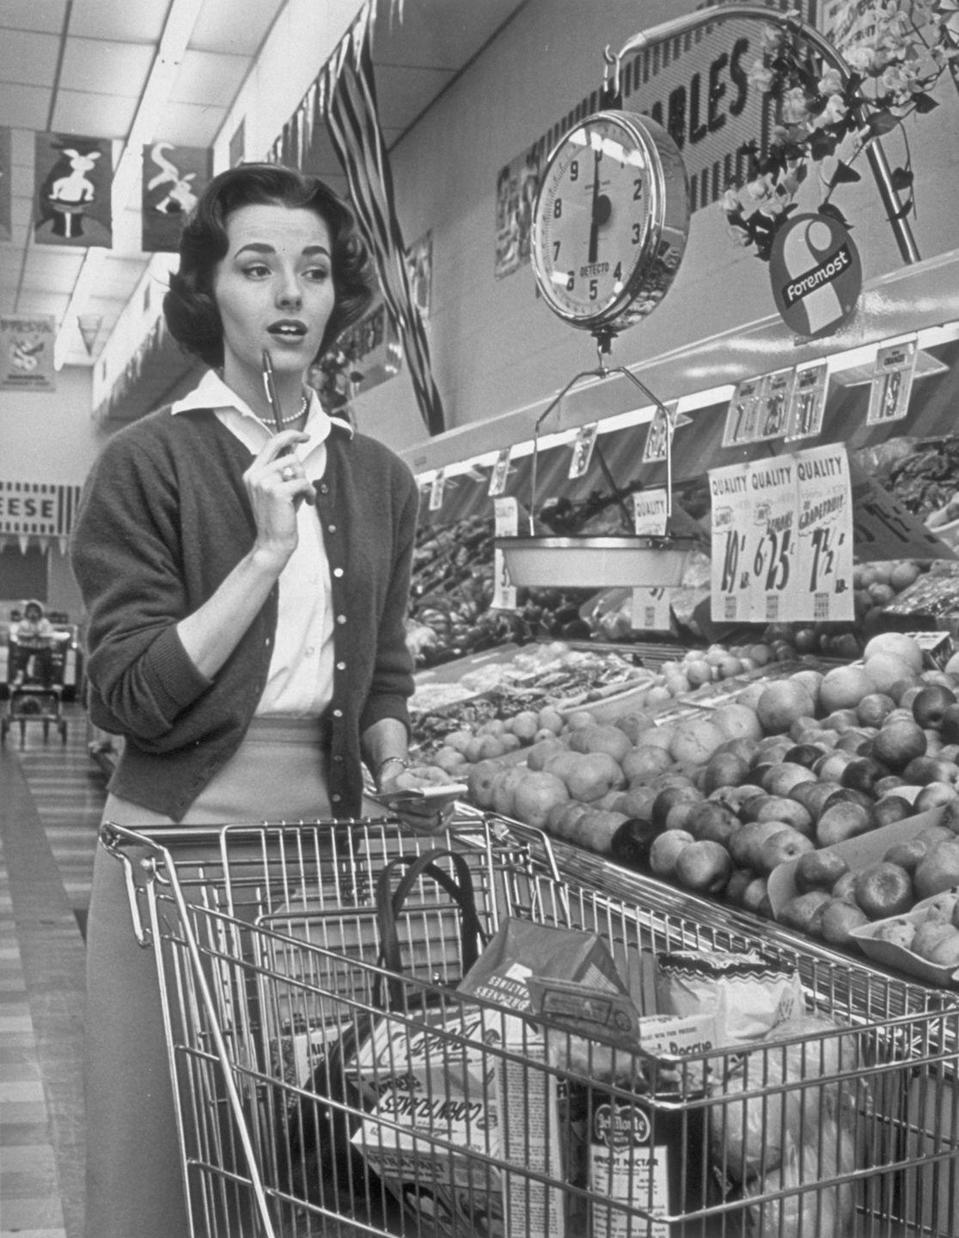 "<p>As competition grew, chains had to come up with ways to make their shopping experience stand out. Some stores did this was by including a <a href=""https://clickamericana.com/topics/culture-and-lifestyle/scenes-from-grocery-stores-supermarkets-of-yesteryear"" rel=""nofollow noopener"" target=""_blank"" data-ylk=""slk:directory of items"" class=""link rapid-noclick-resp"">directory of items</a> on the back of the cart. </p>"